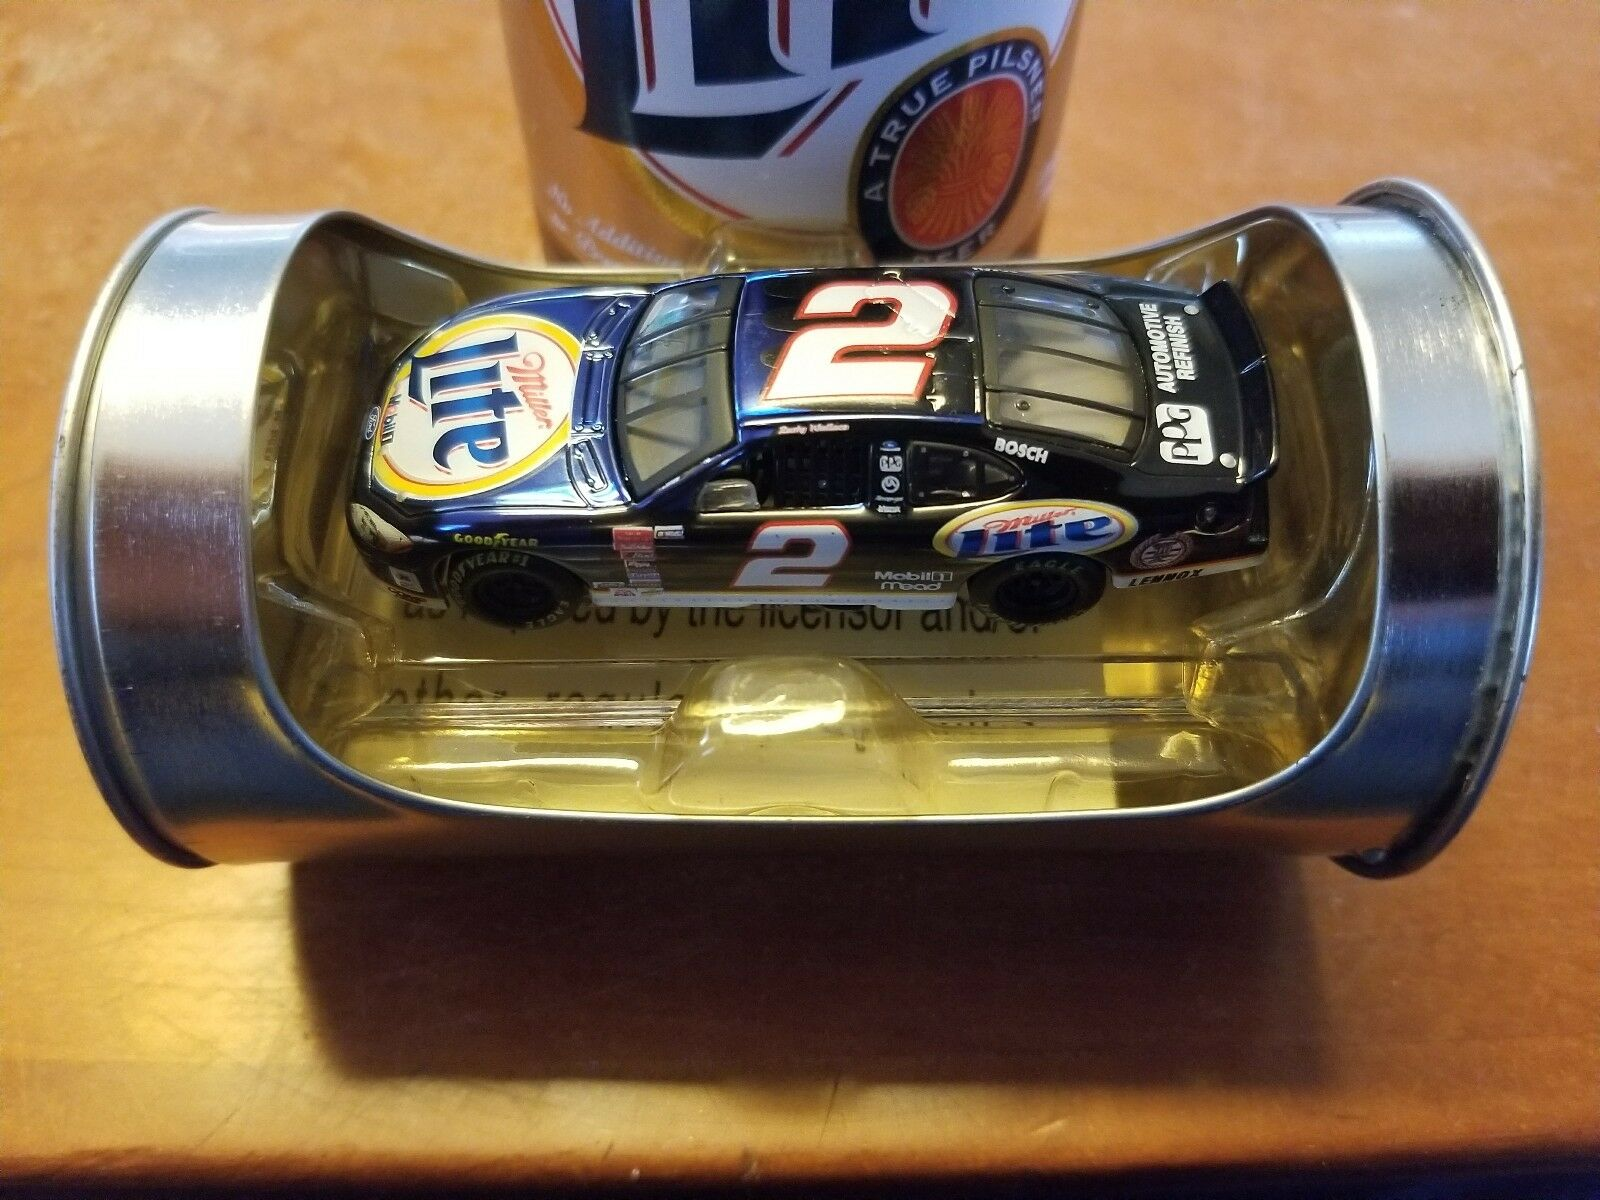 Action 2000 Ford Taurus Rusty Wallace Miller Lite 10th Anniversary of 7560